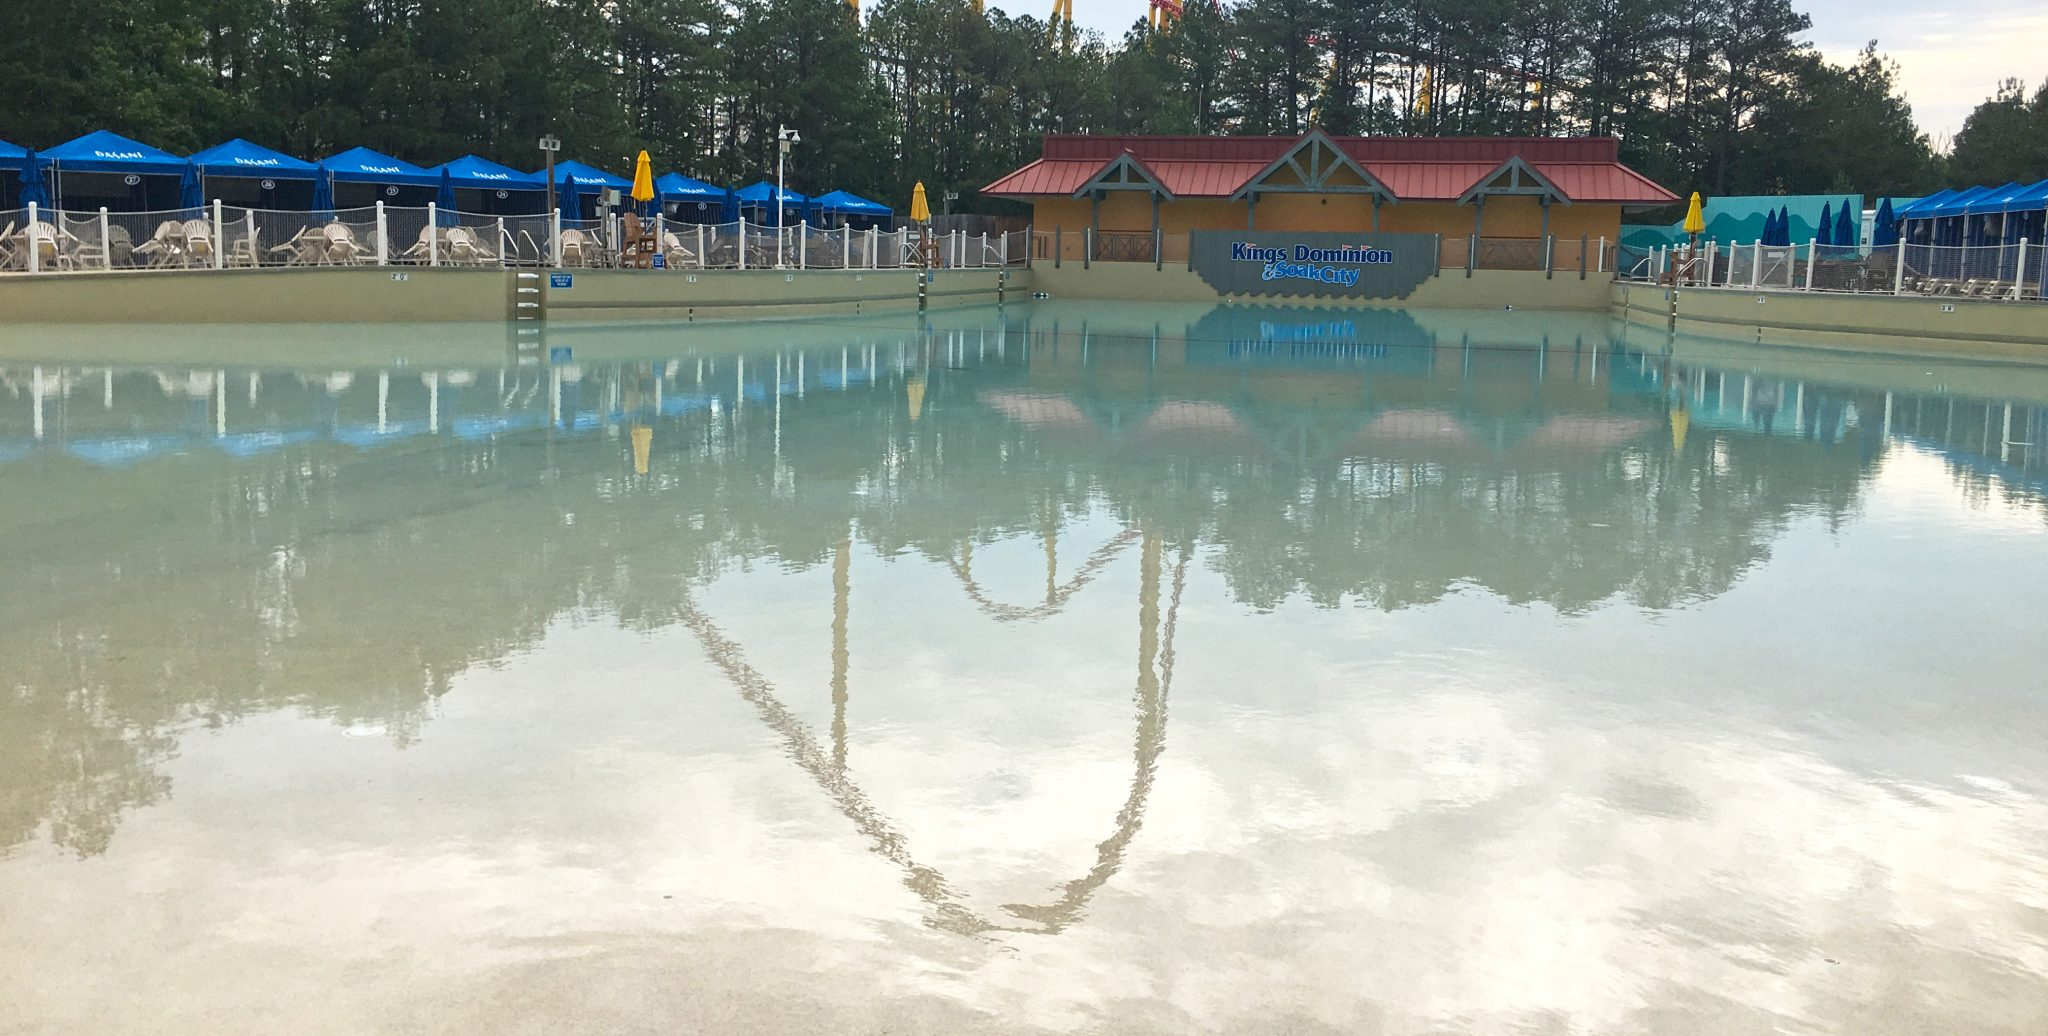 wave pool at kings dominion coconut shores